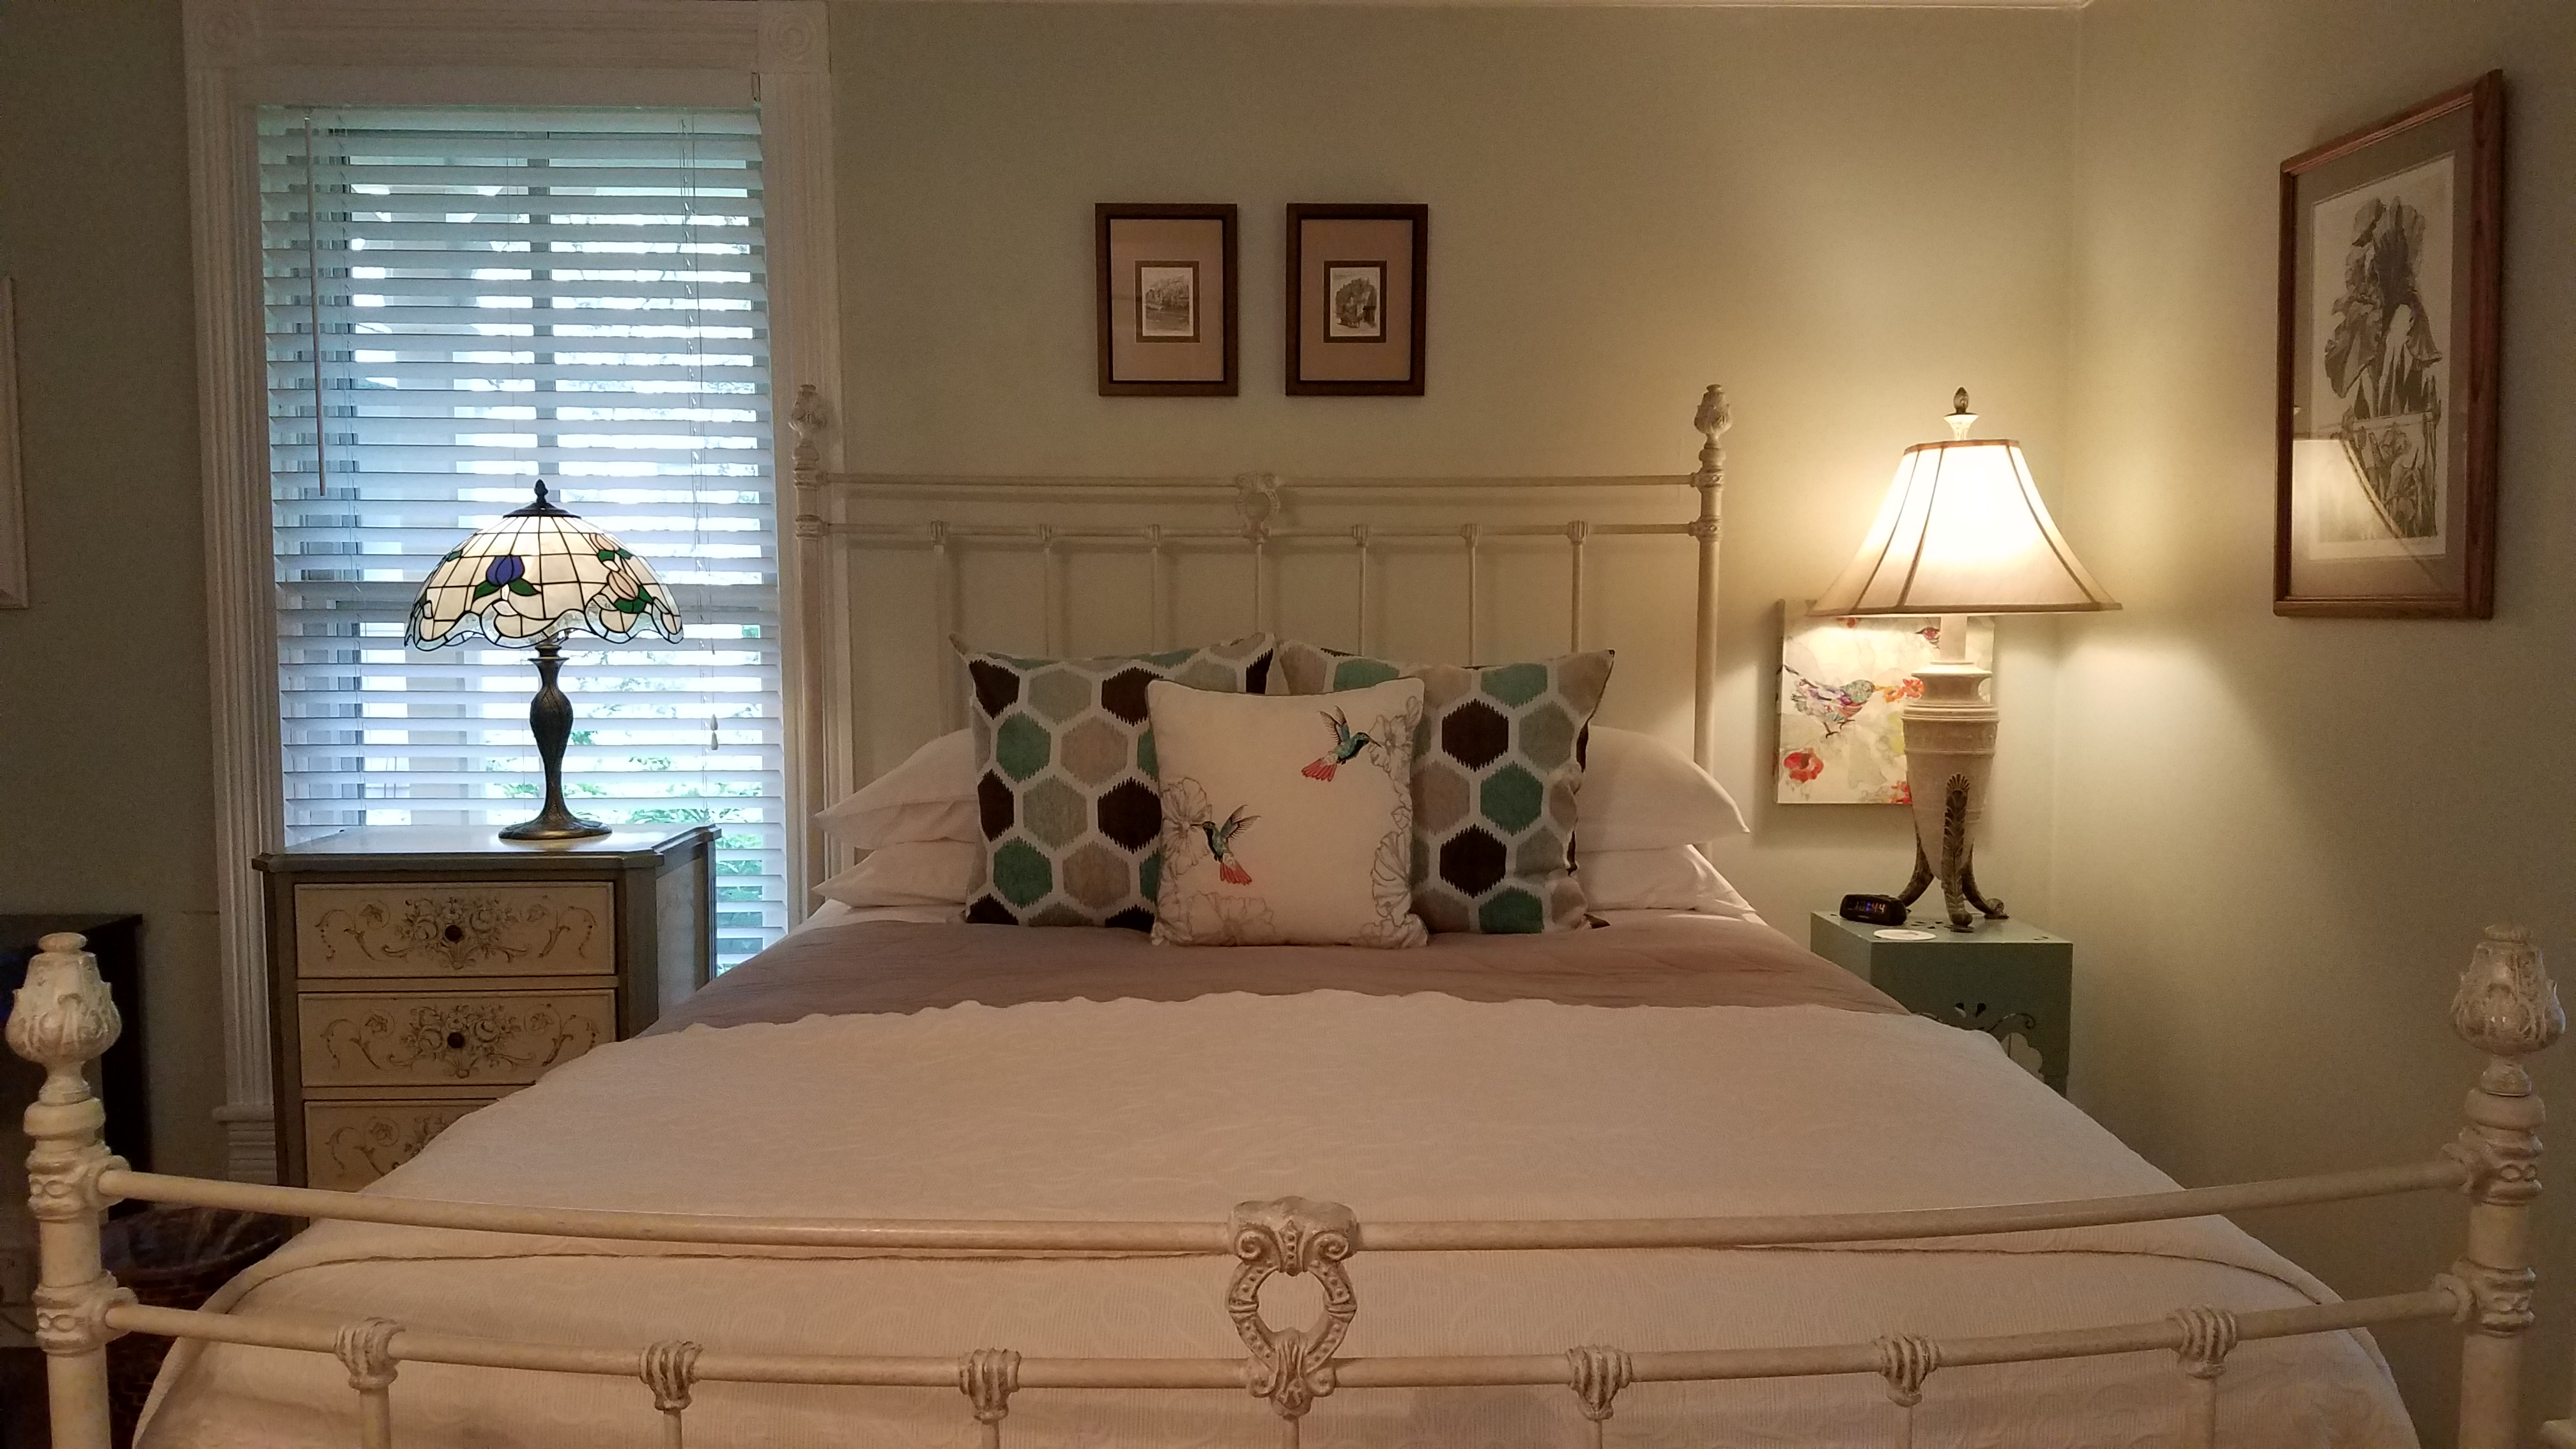 Pet friendly bed and breakfast lexington va area goshen for Area riservata bed and breakfast